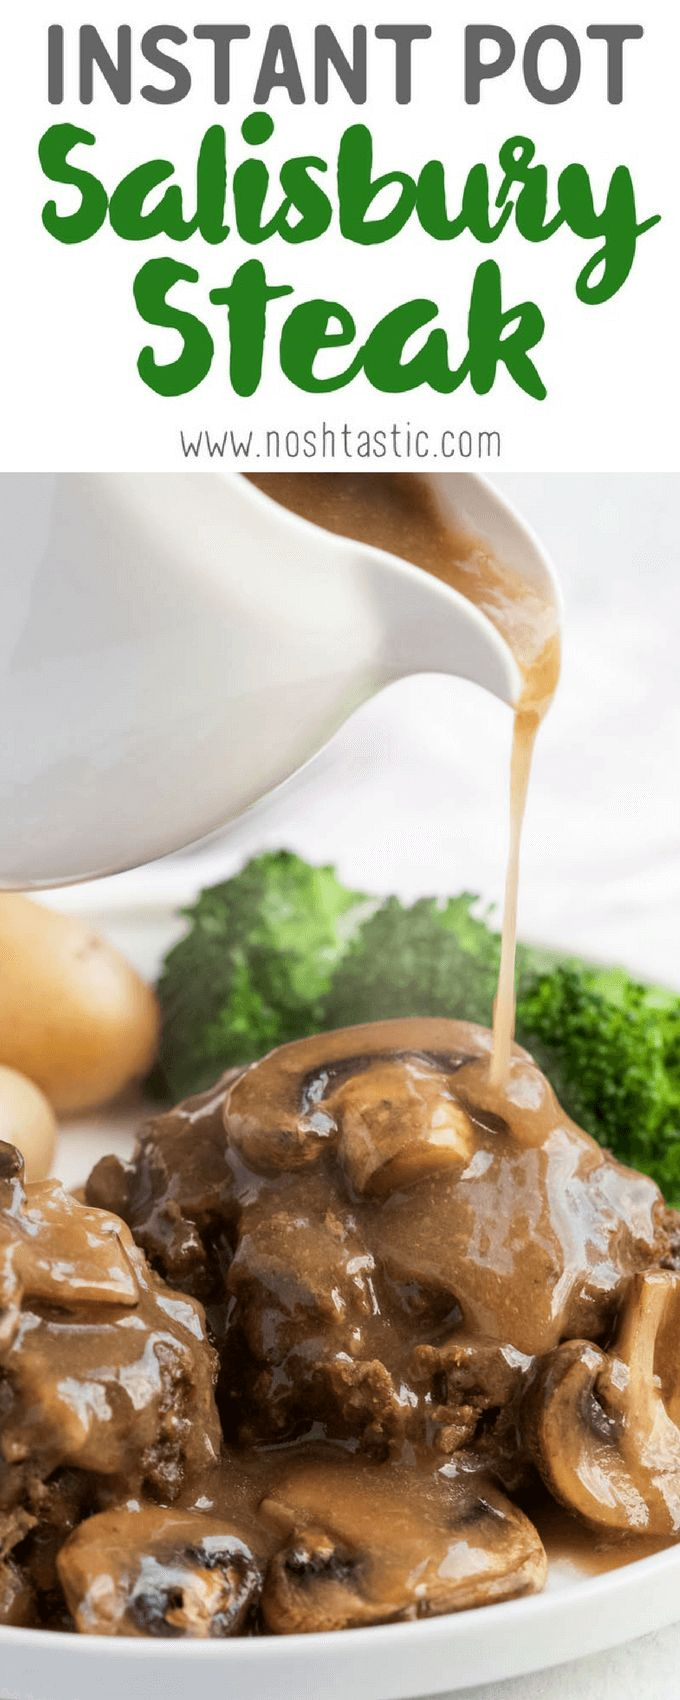 You'll love my gluten free Instant Pot Salisbury Steak with Mushroom Gravy recipe! It's a really easy weeknight pressure cooker meal that's also gluten and dairy free. Made with ground beef and mushrooms, potatoes optional.